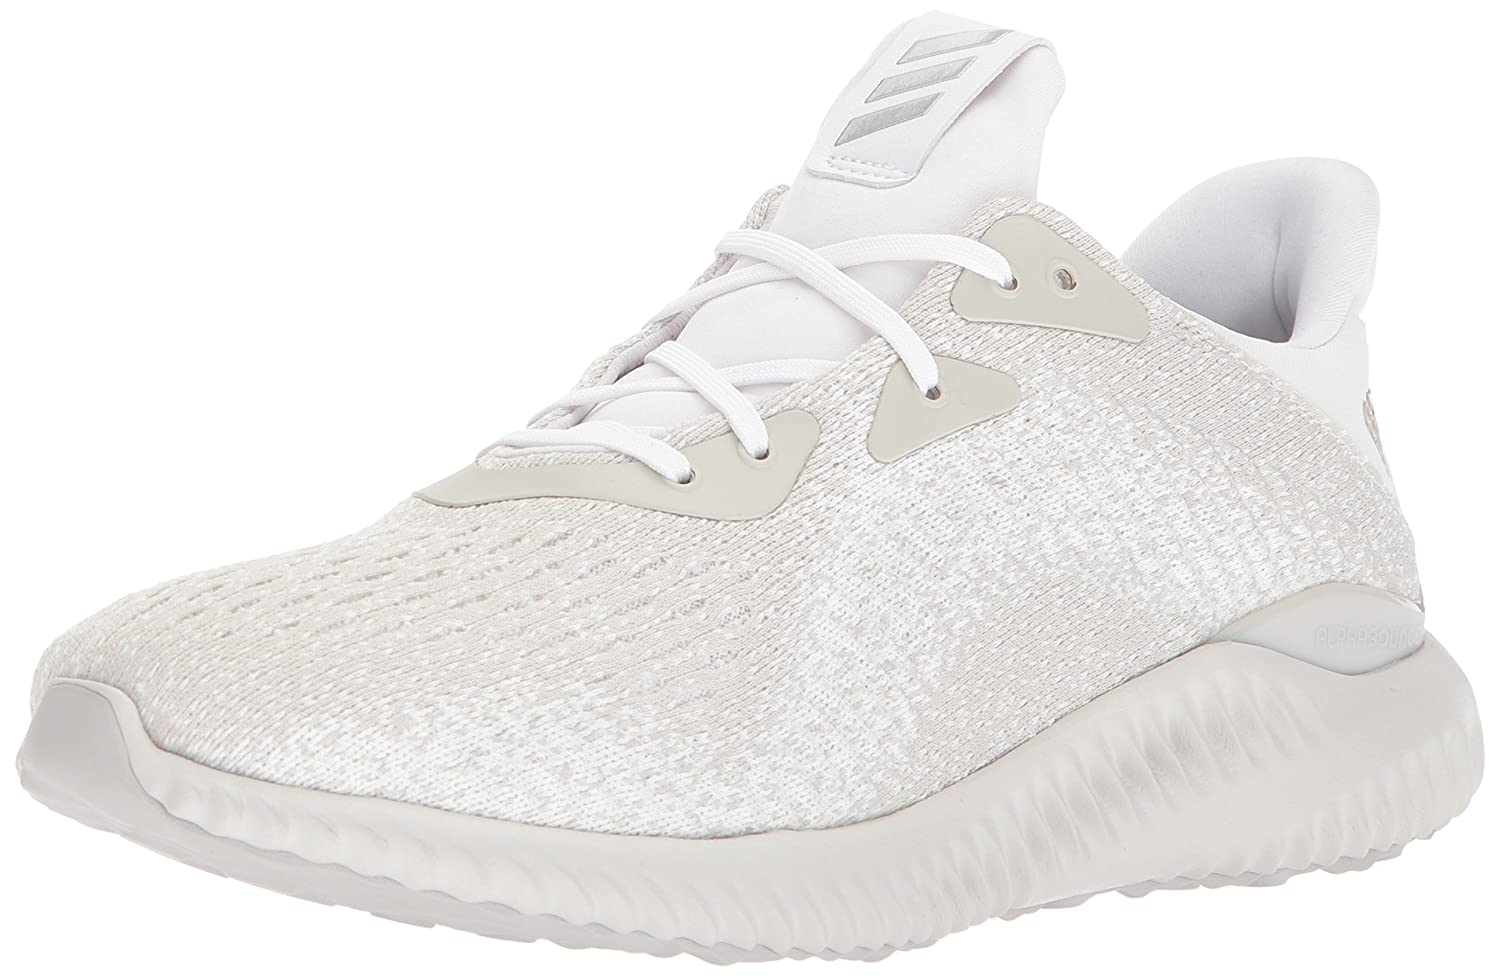 0600c803c Adidas Mens Alphabounce Ck M Running Shoes Factory Sale 45N214